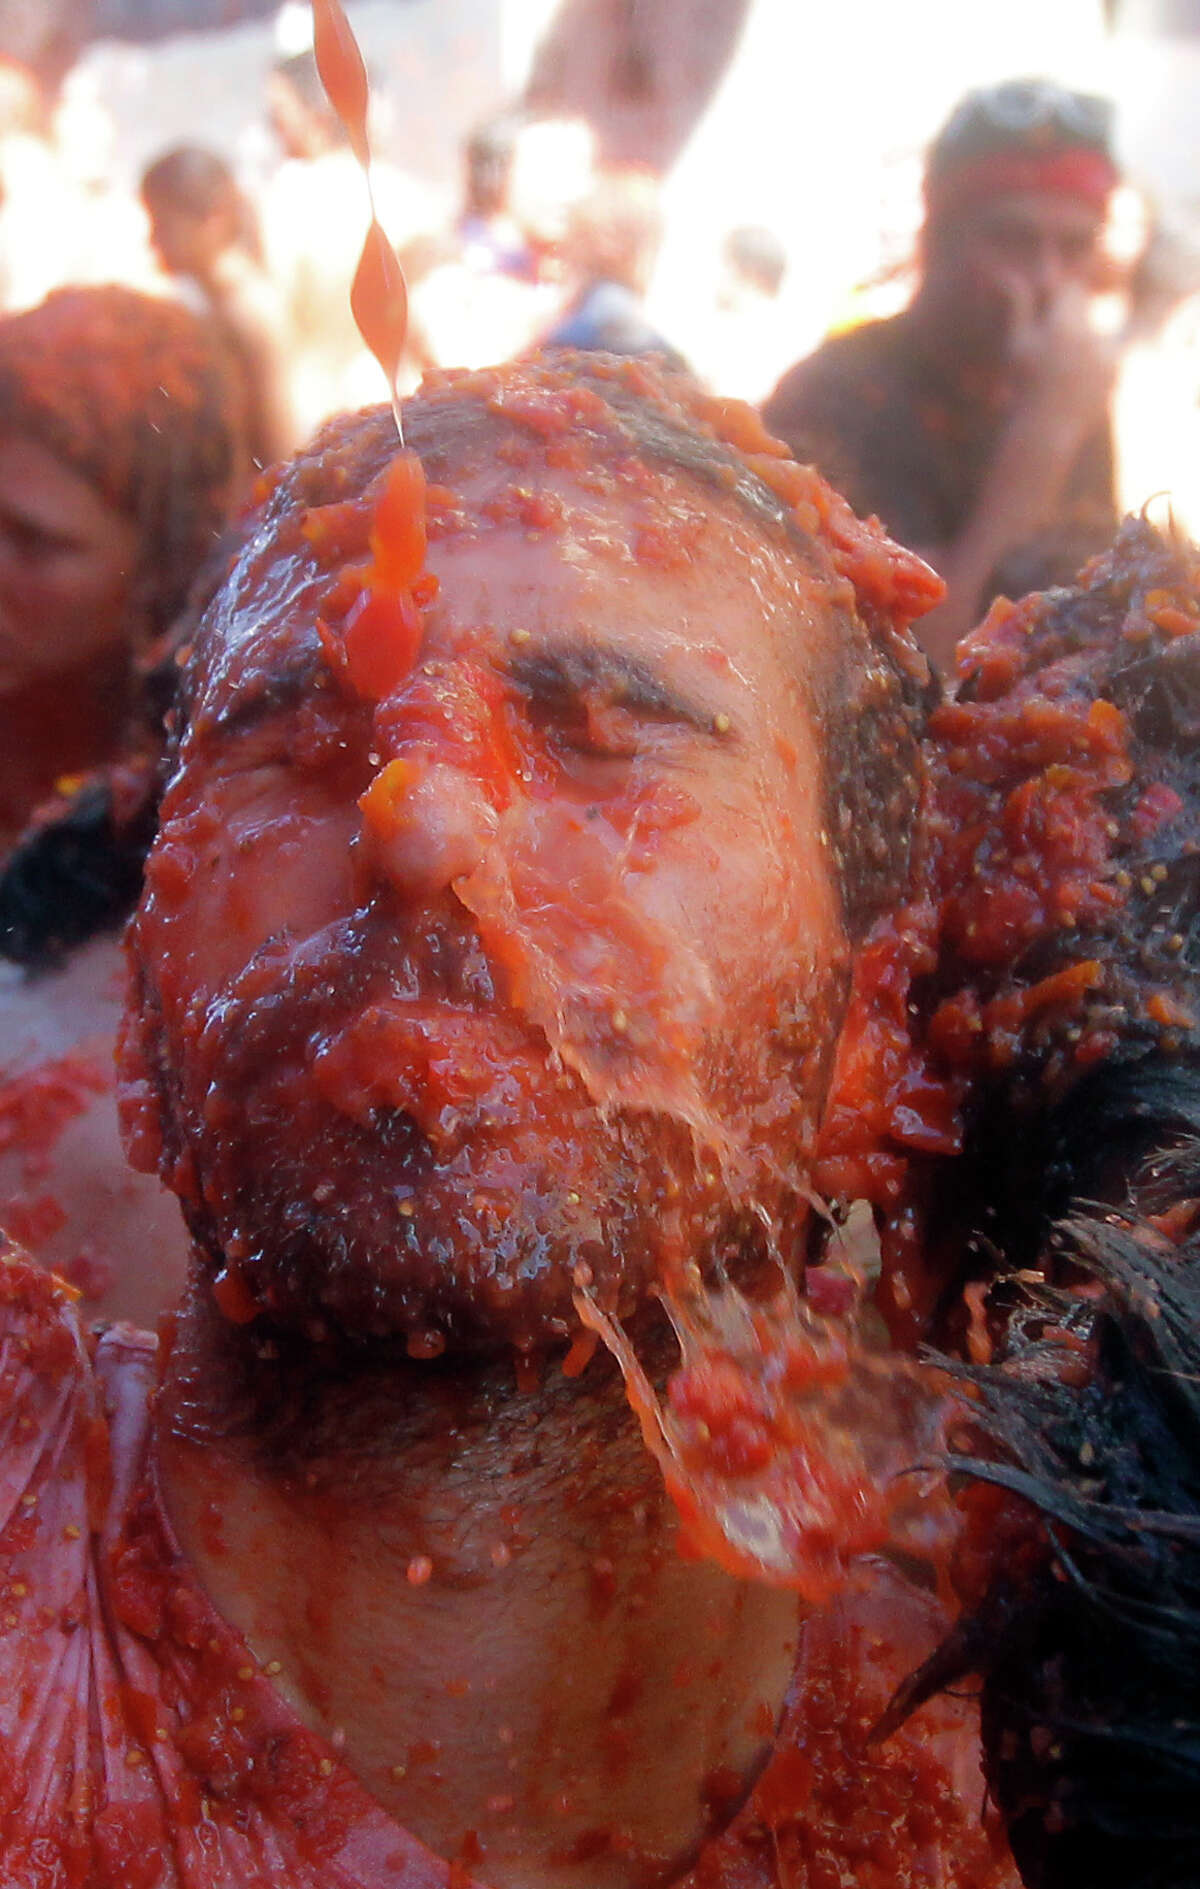 A man reacts as he is hit with tomatoes, during the annual